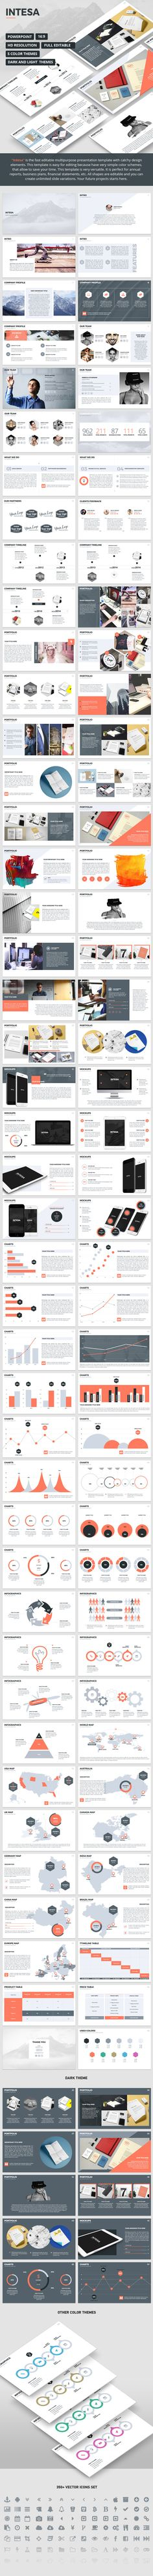 Intesa - PowerPoint Template. Download here: http://graphicriver.net/item/intesa-powerpoint-template/15331363?ref=ksioks